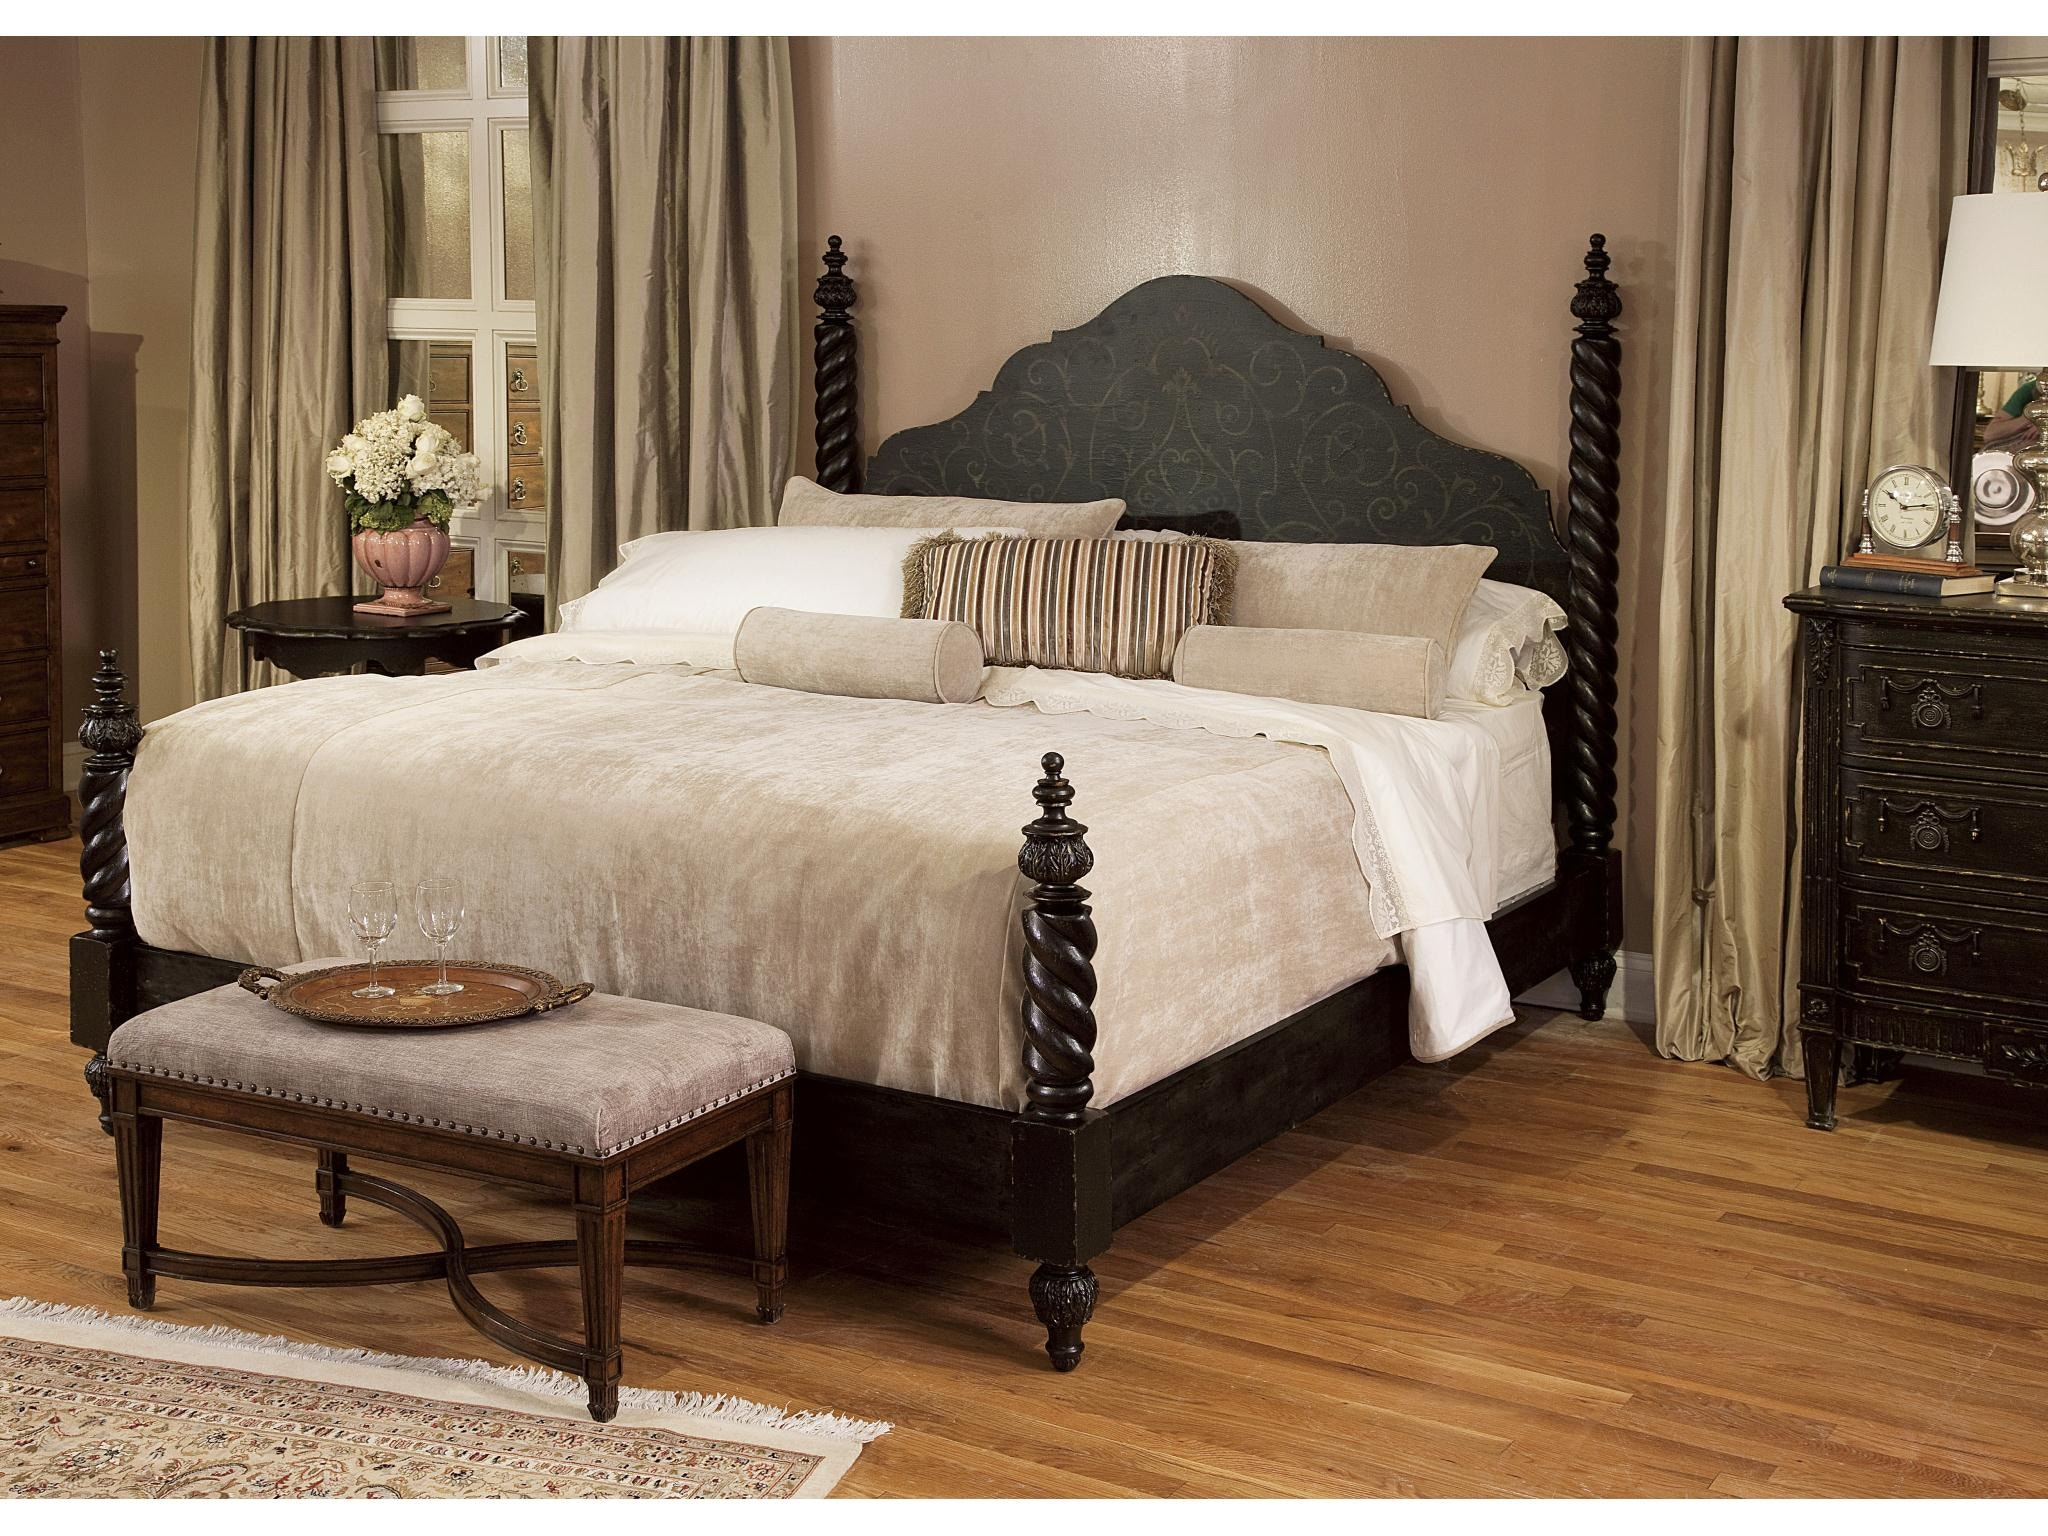 Fine Furniture Design Bedroom Bed Bench Vanderbilt 1340502